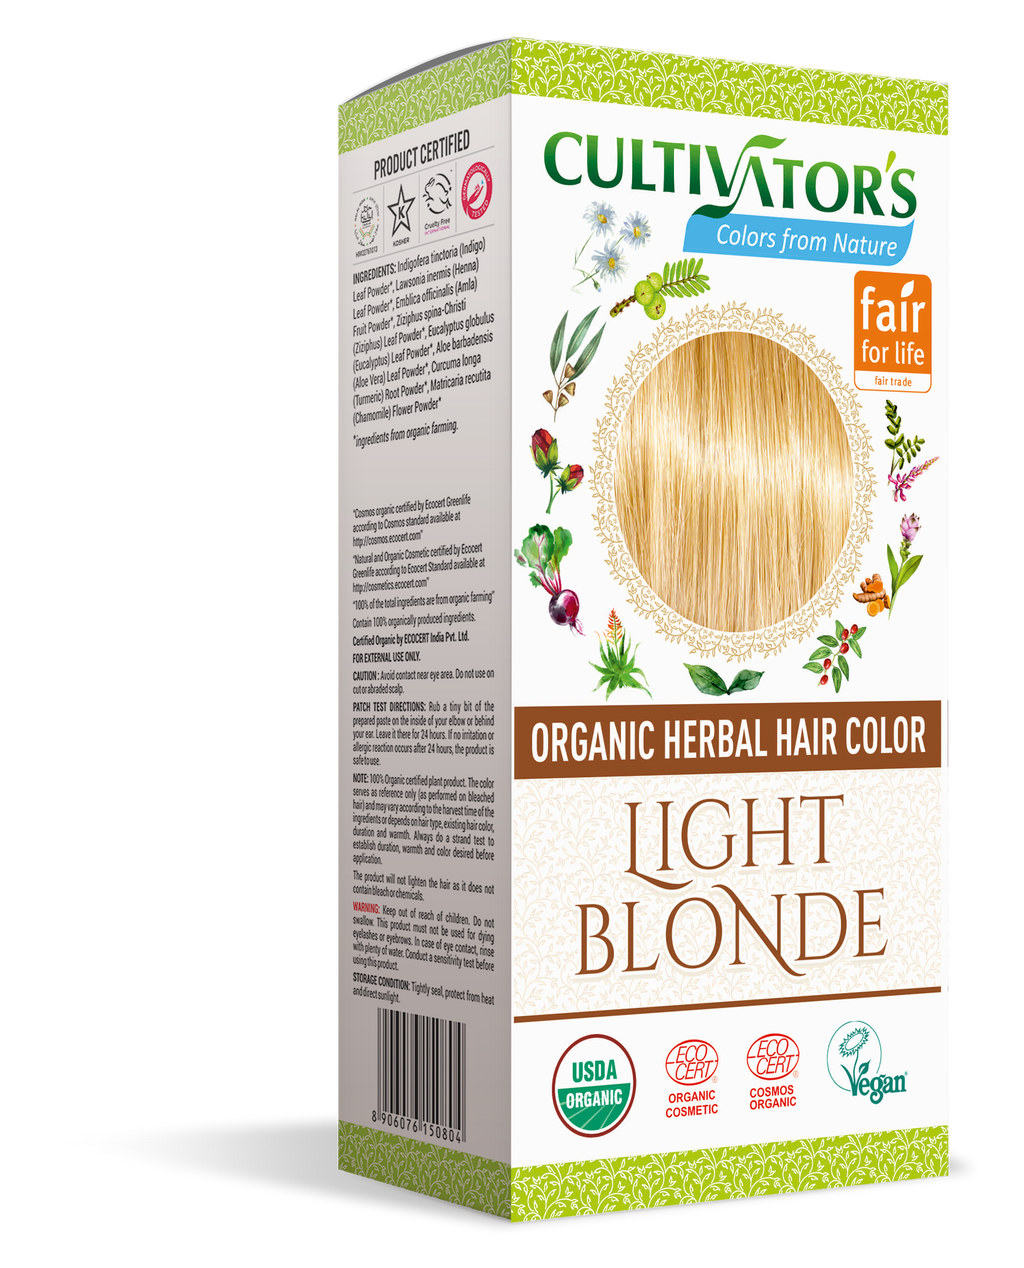 Cultivators Organic Herbal Hair Color Light Blonde | Explore Now